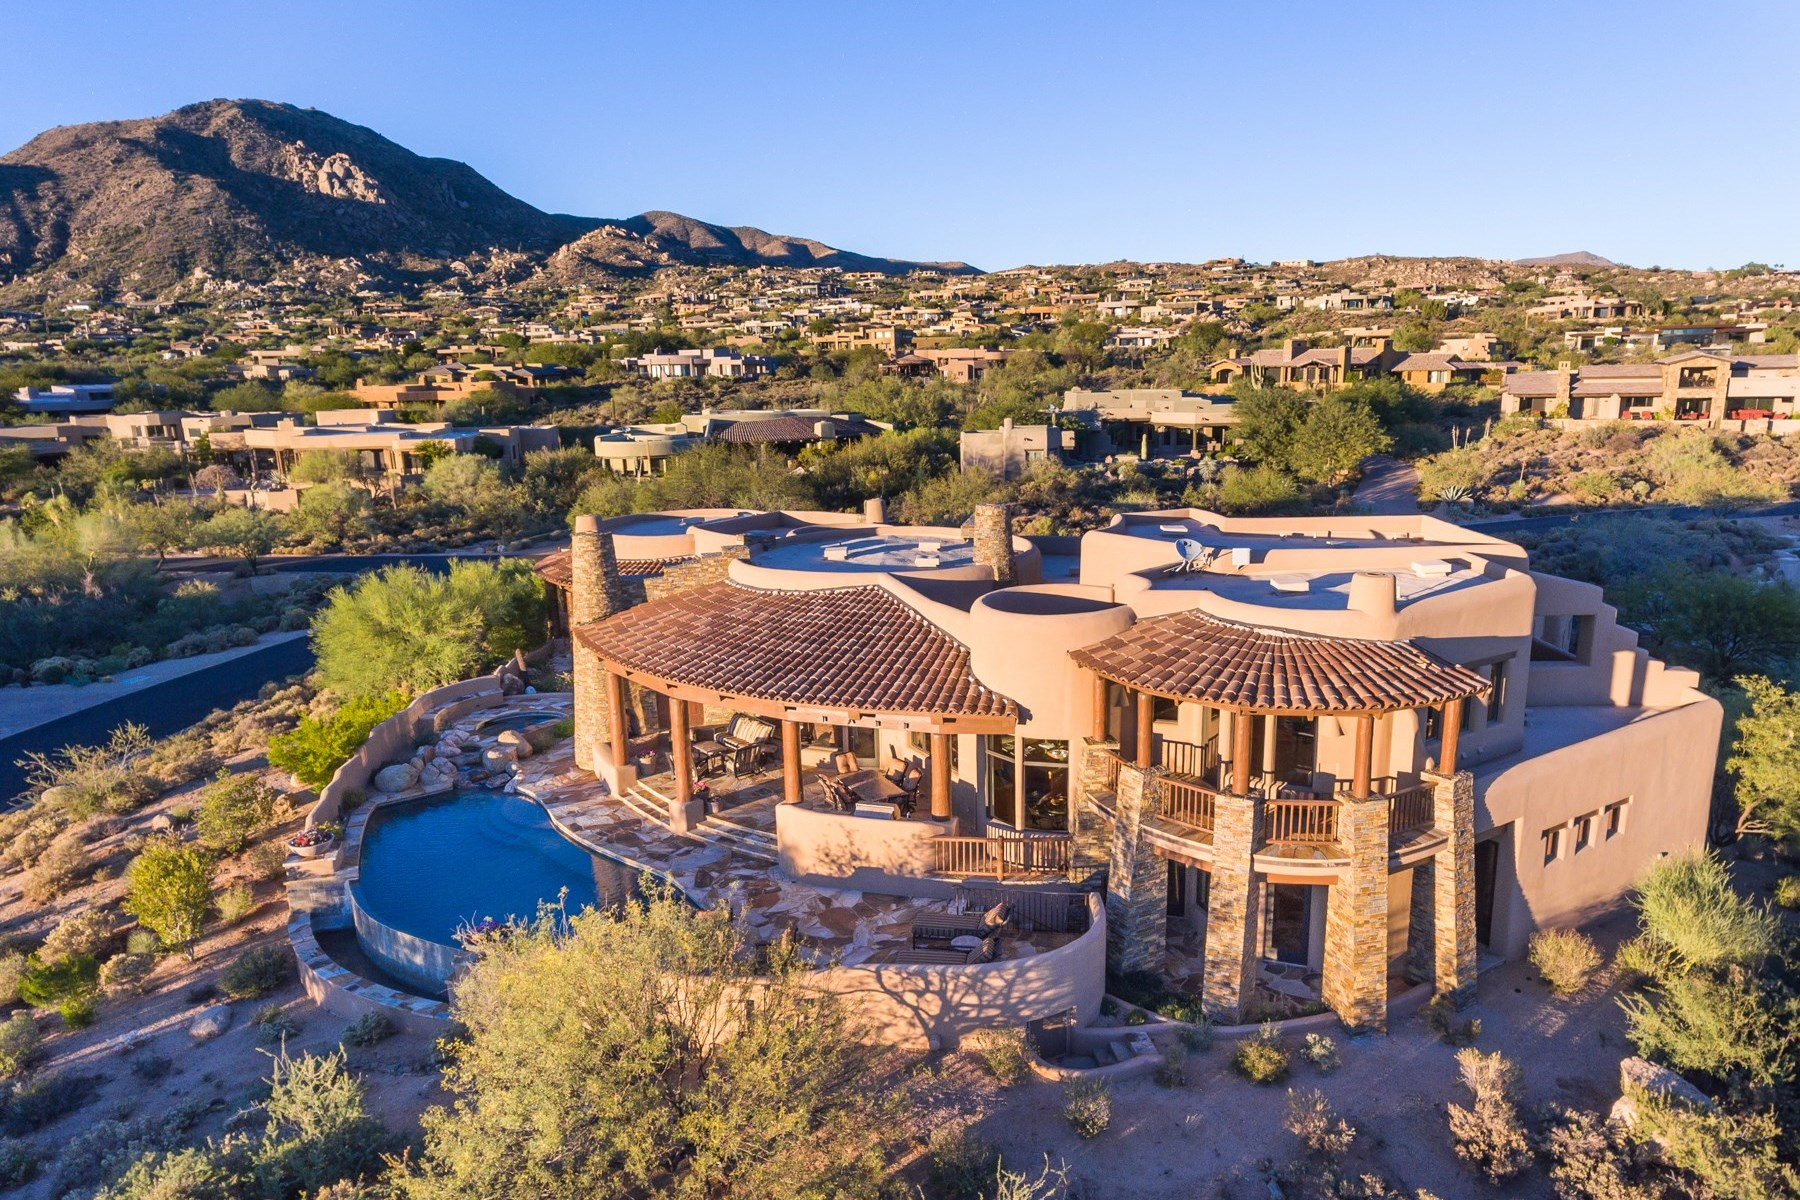 Single Family Home for Sale at Exceptional custom home on spectacular lot 11105 E Tamarisk Way Scottsdale, Arizona, 85262 United States